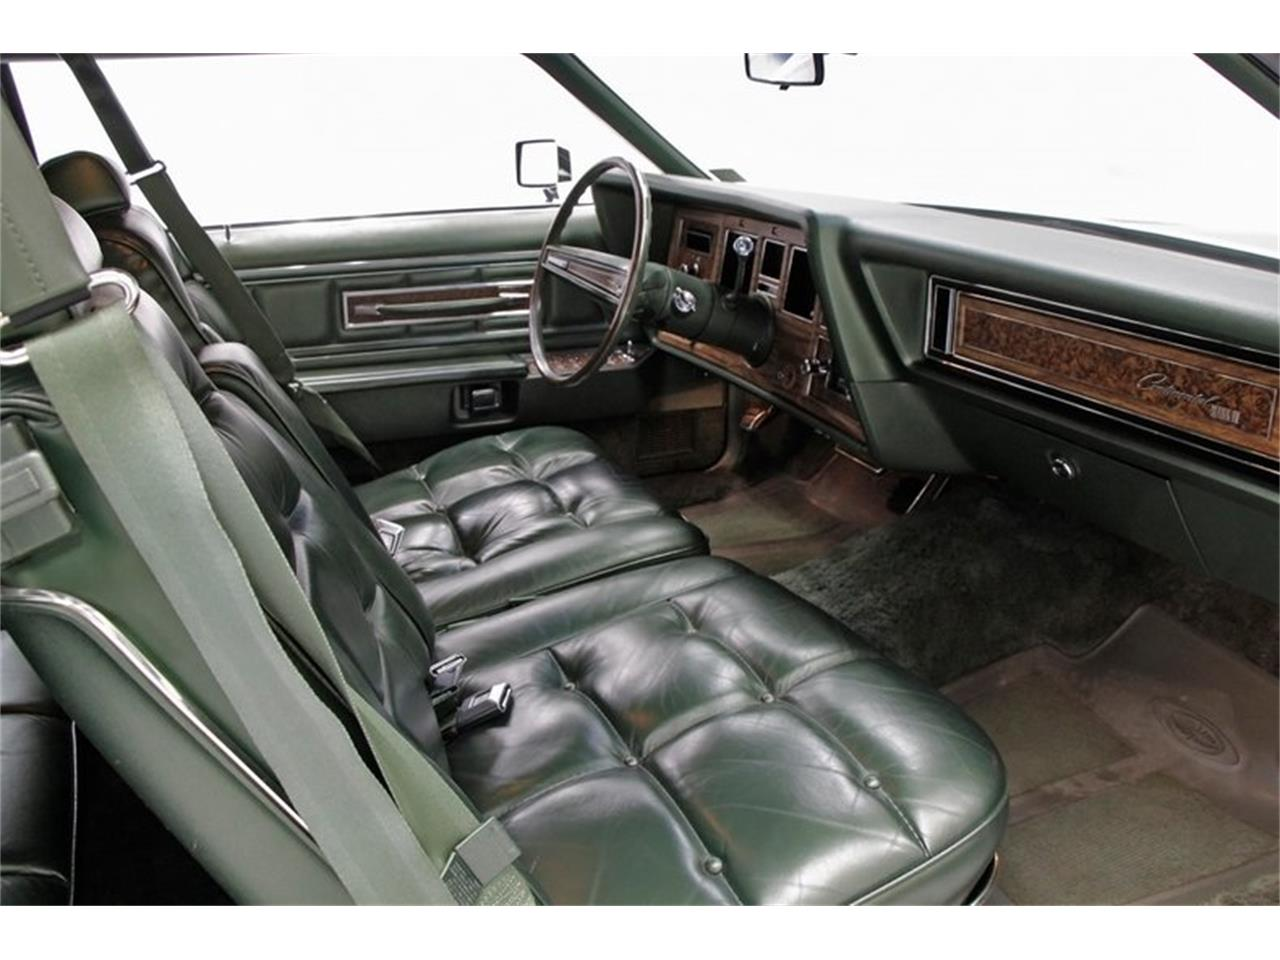 1974 Lincoln Continental Mark IV for sale in Morgantown, PA – photo 30